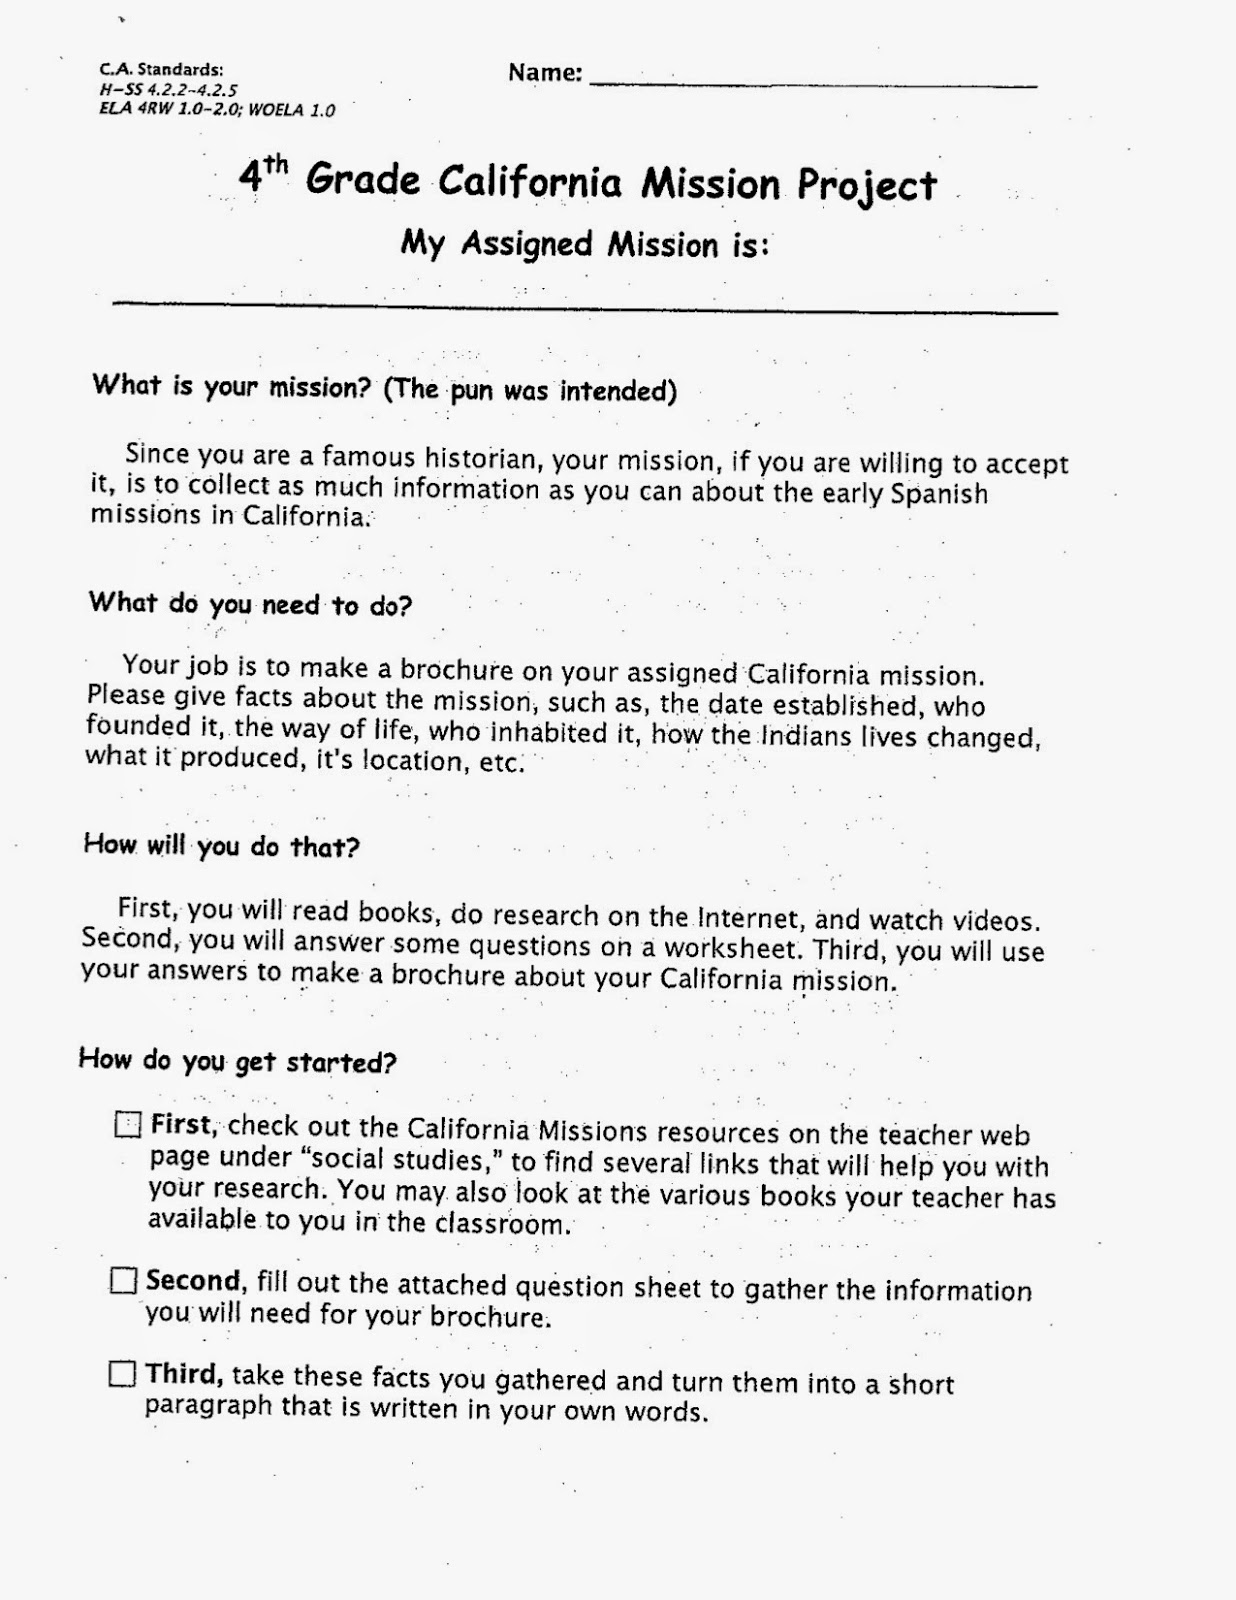 California Missions Worksheets For Kids   Printable Worksheets and  Activities for Teachers [ 1600 x 1236 Pixel ]